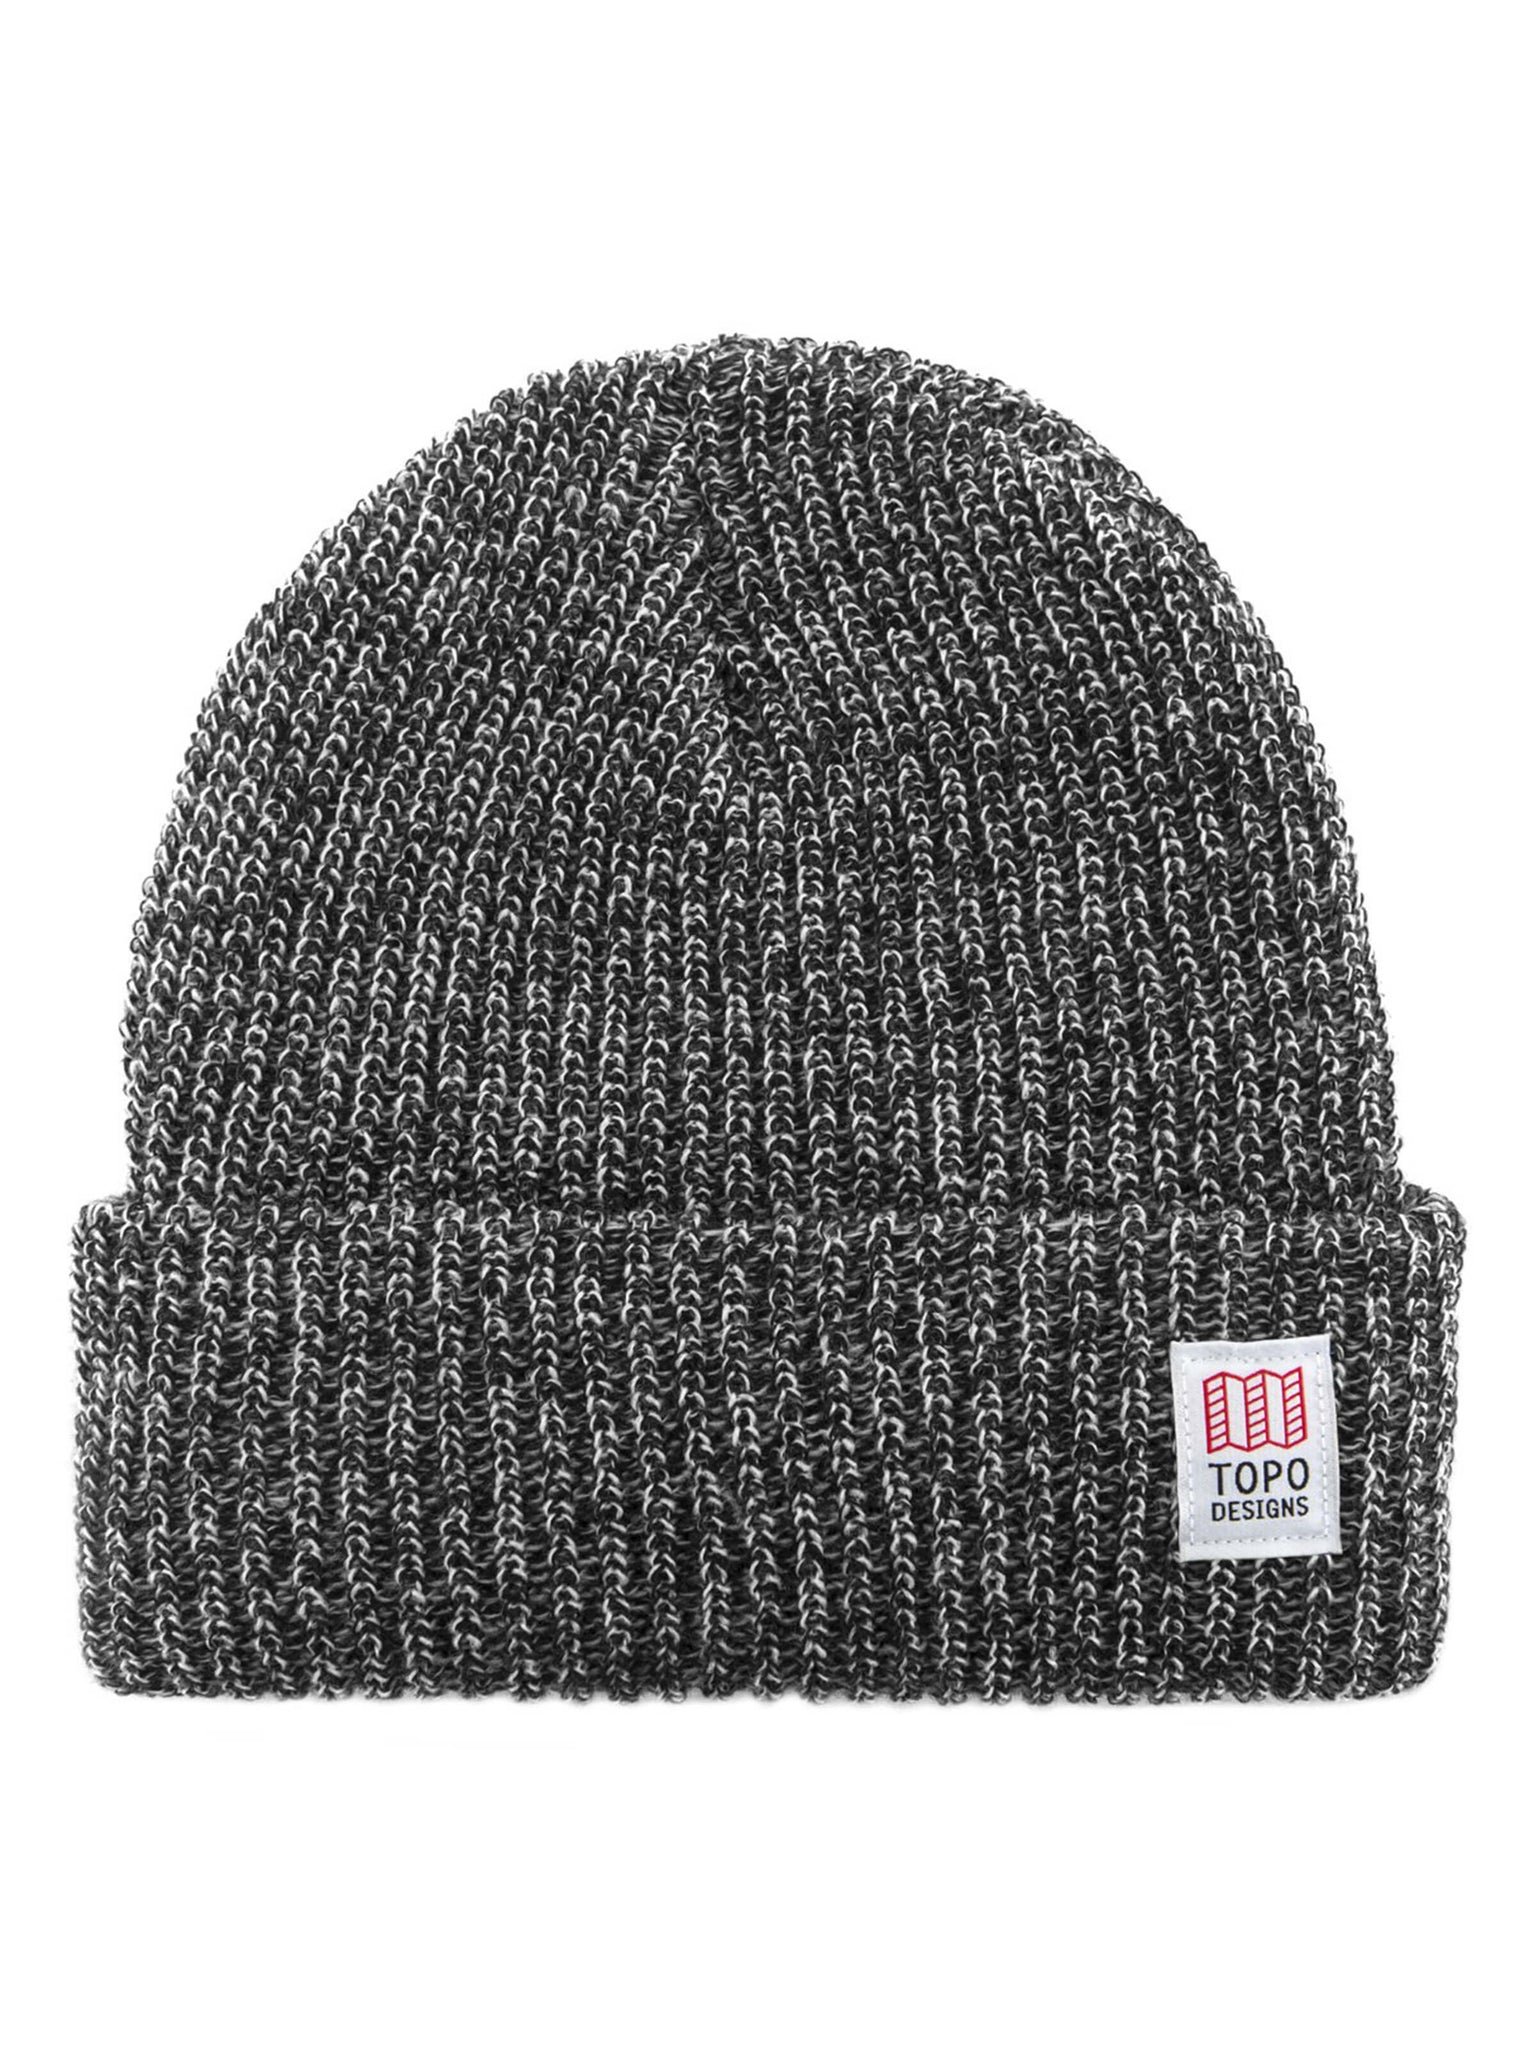 Topo Designs Heavy Knit Watch Cap - Black / White Marl